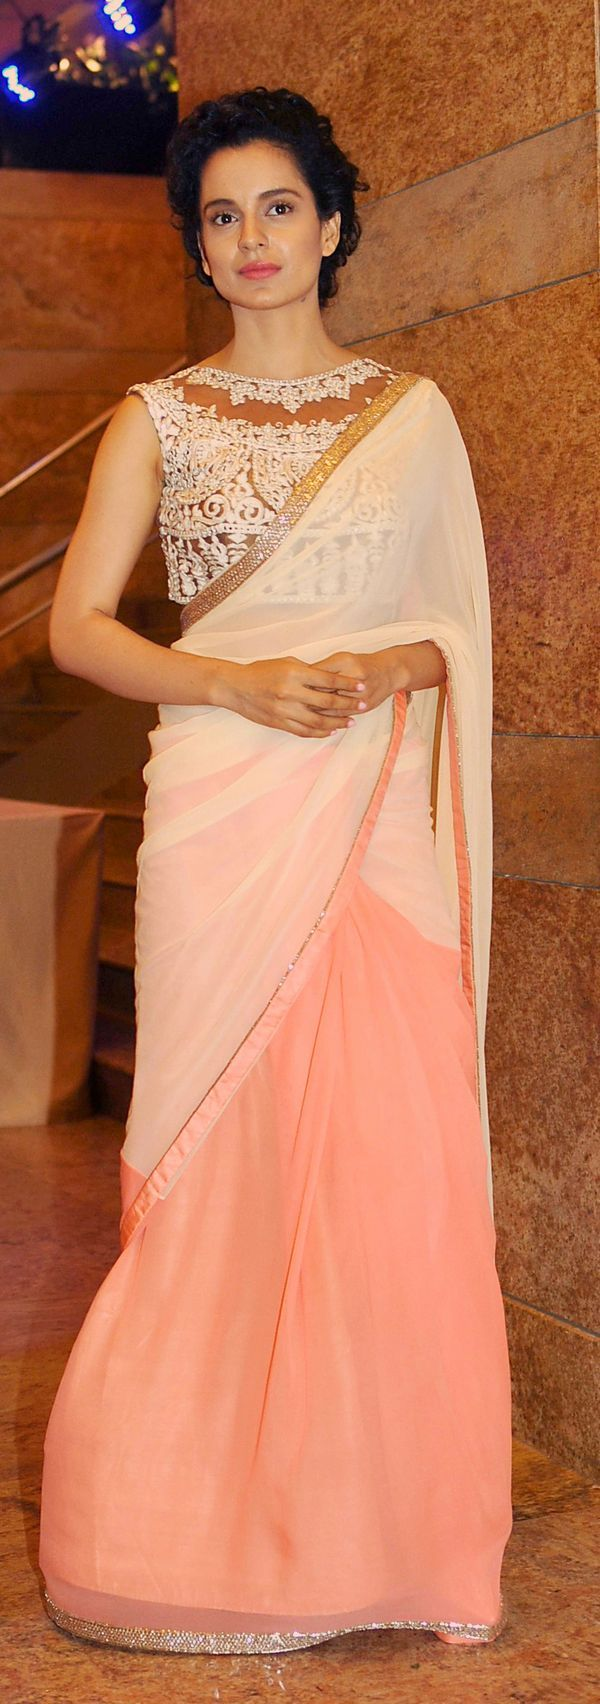 Love the blouse and saree